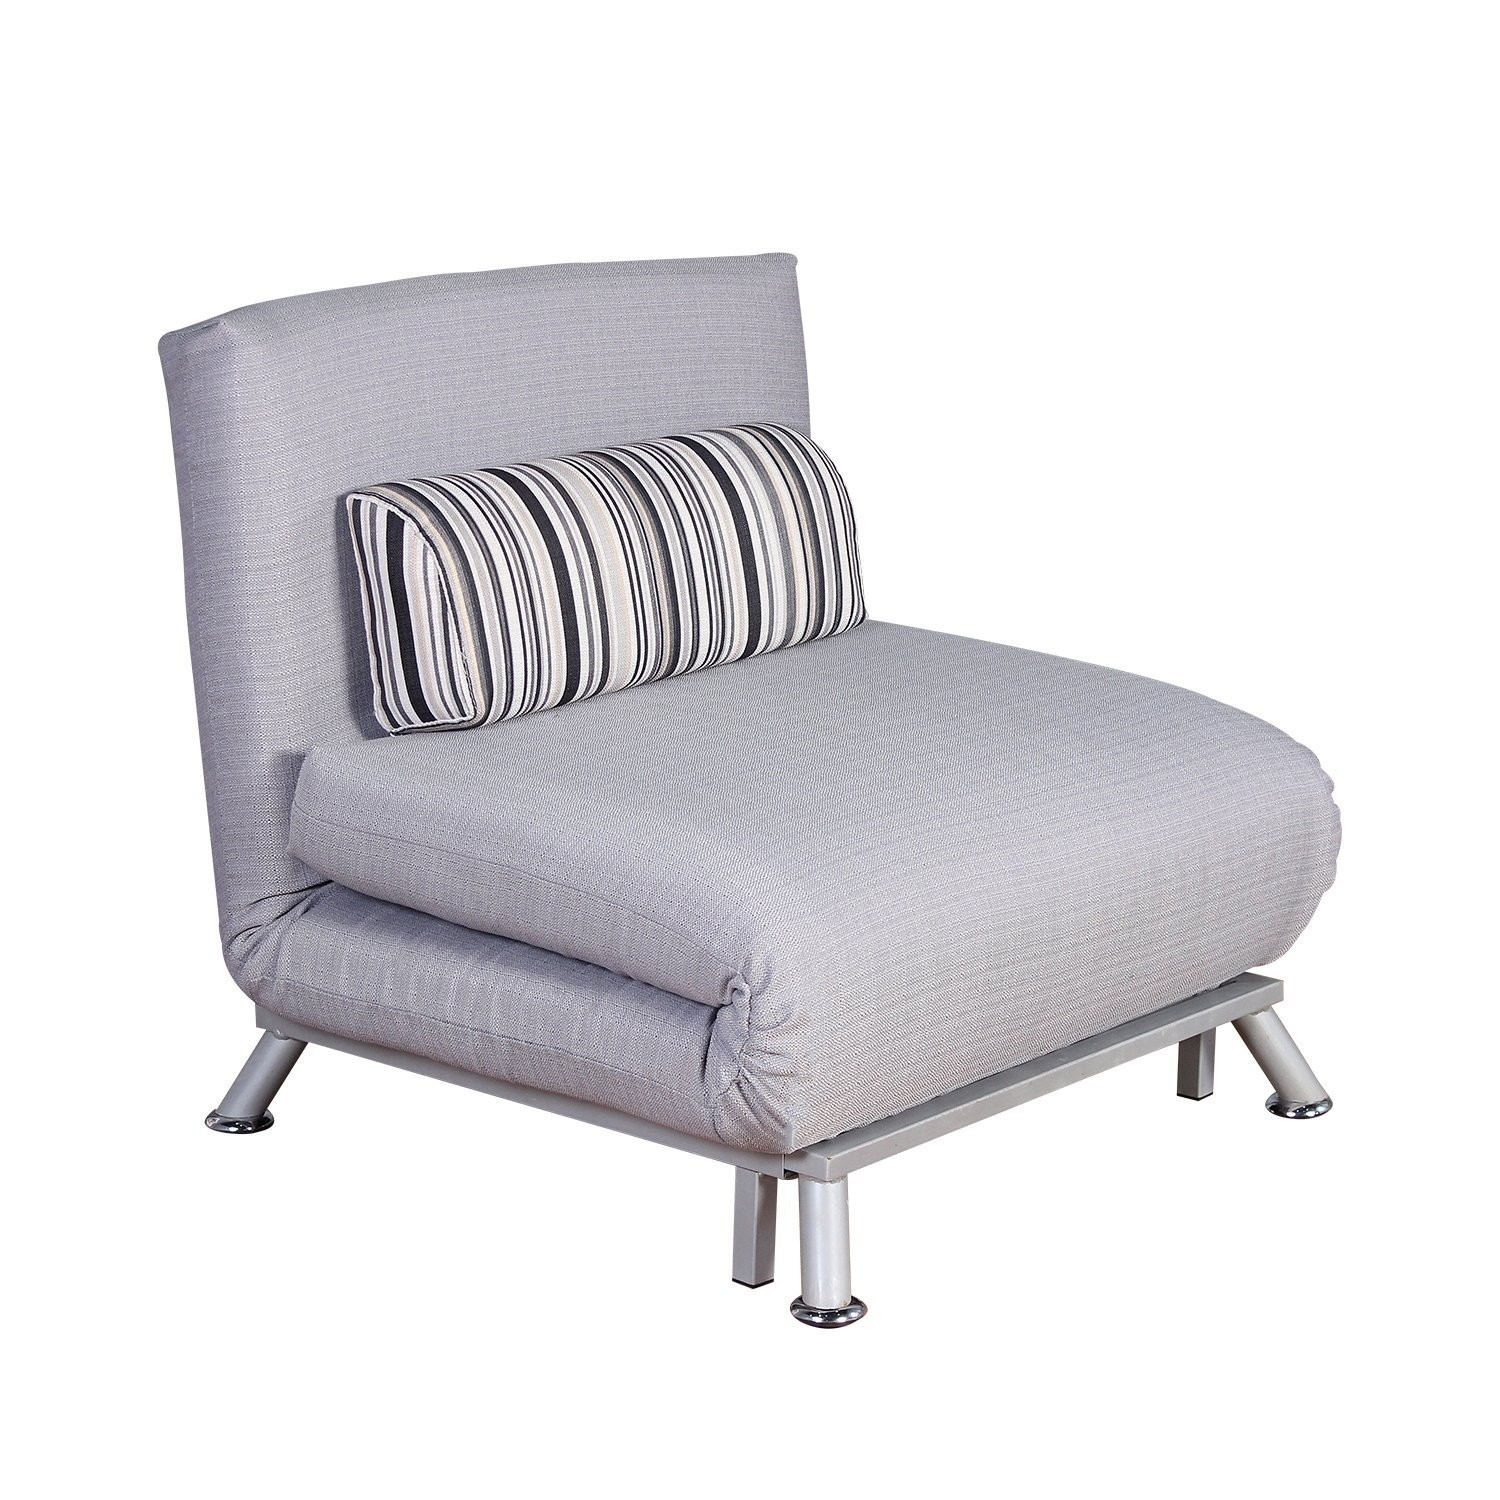 Single Sofa Sleeper Cymun Designs Pertaining To Cheap Single Sofa Bed Chairs (Image 13 of 15)